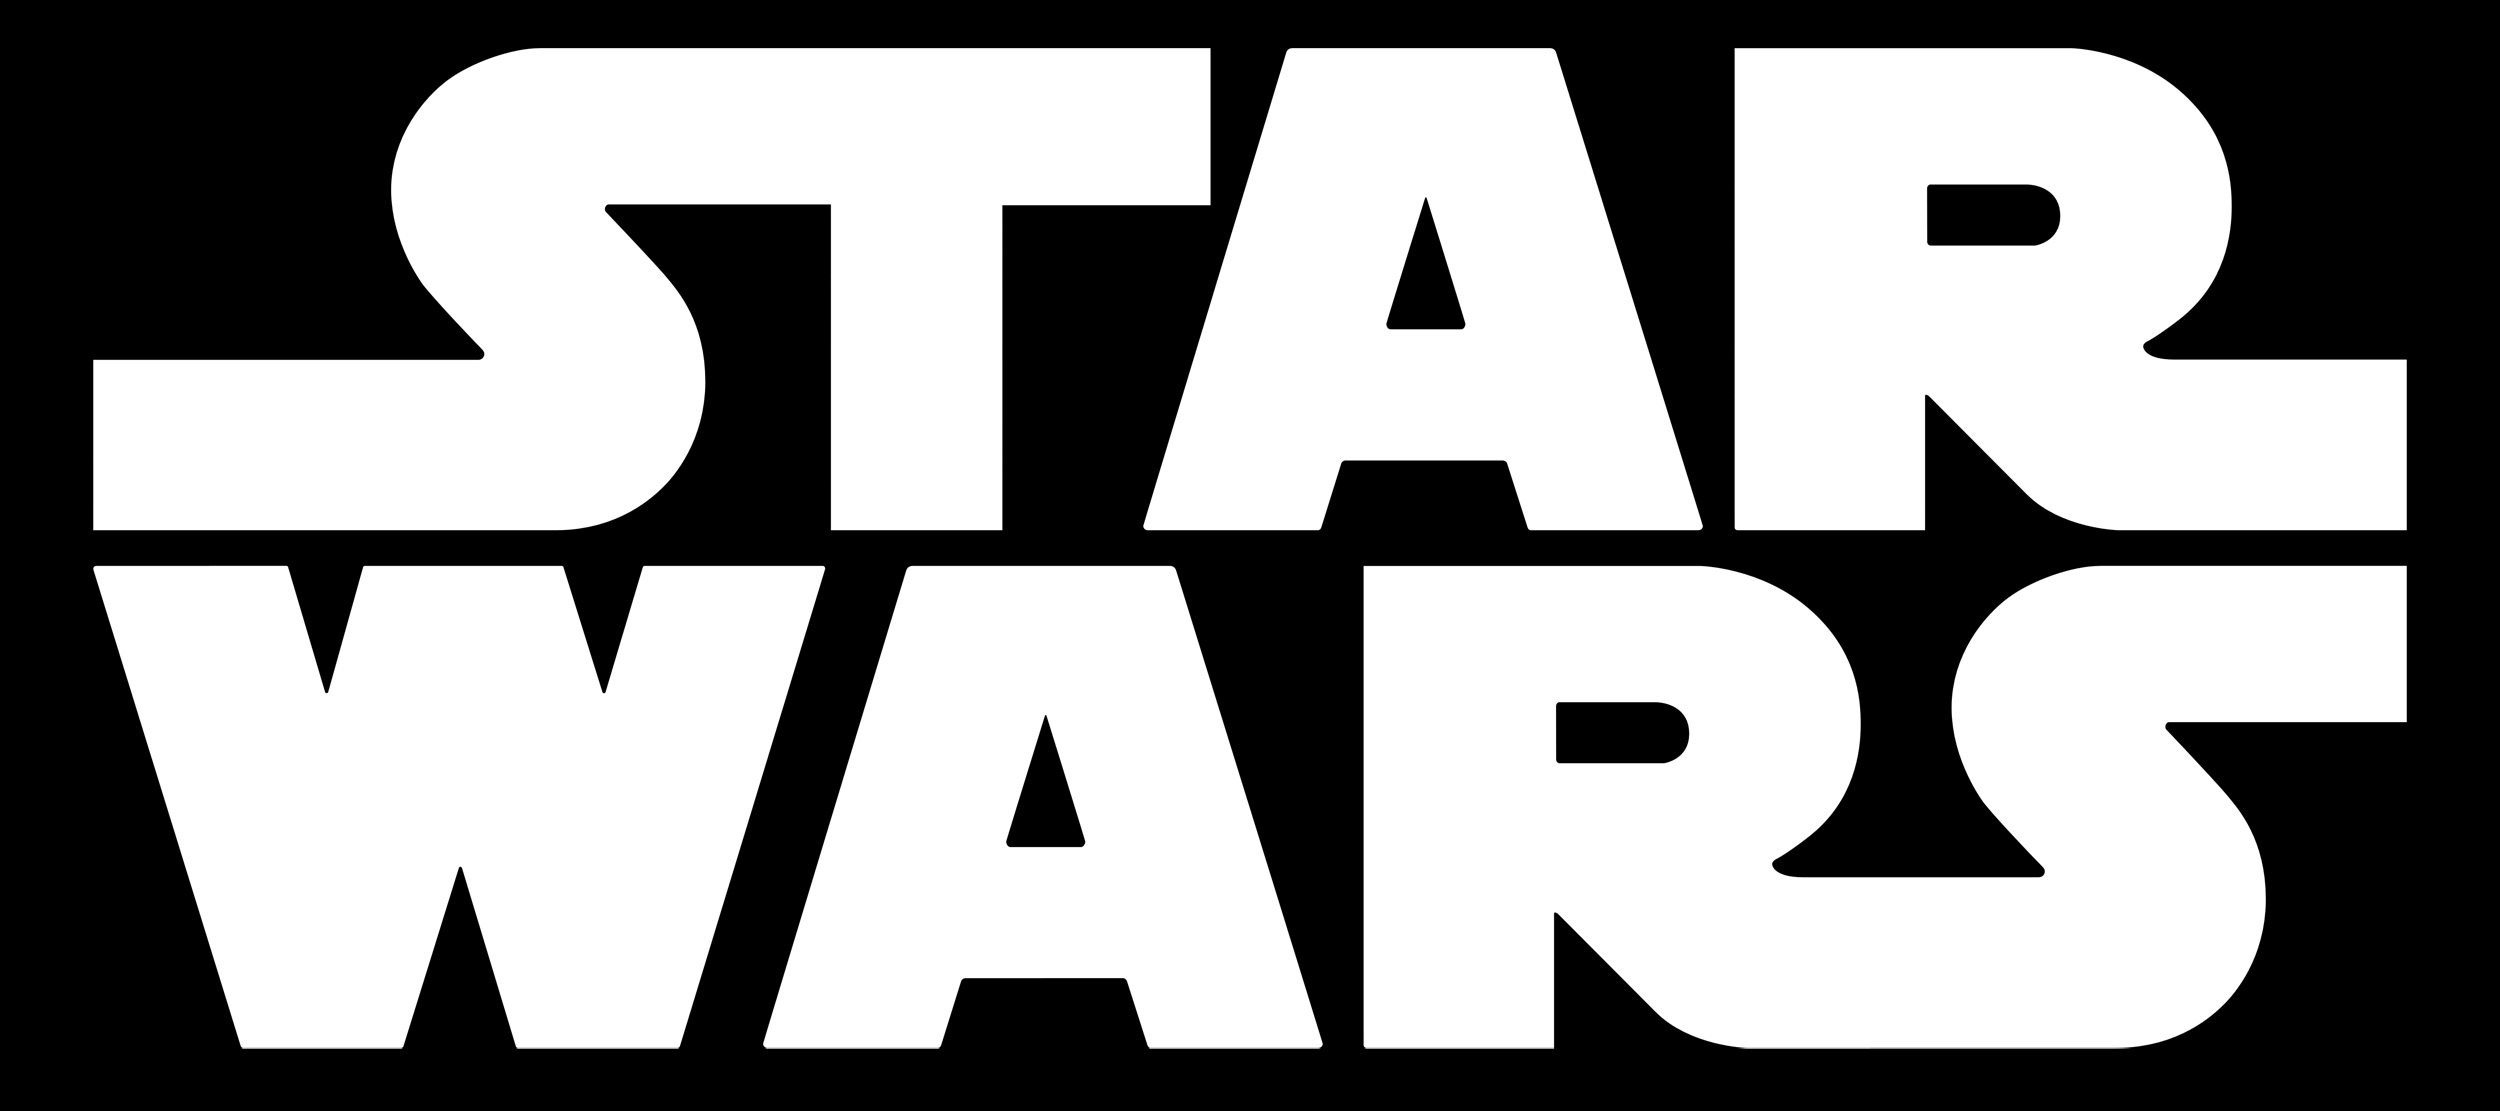 Meaning Star Wars logo and symbol.